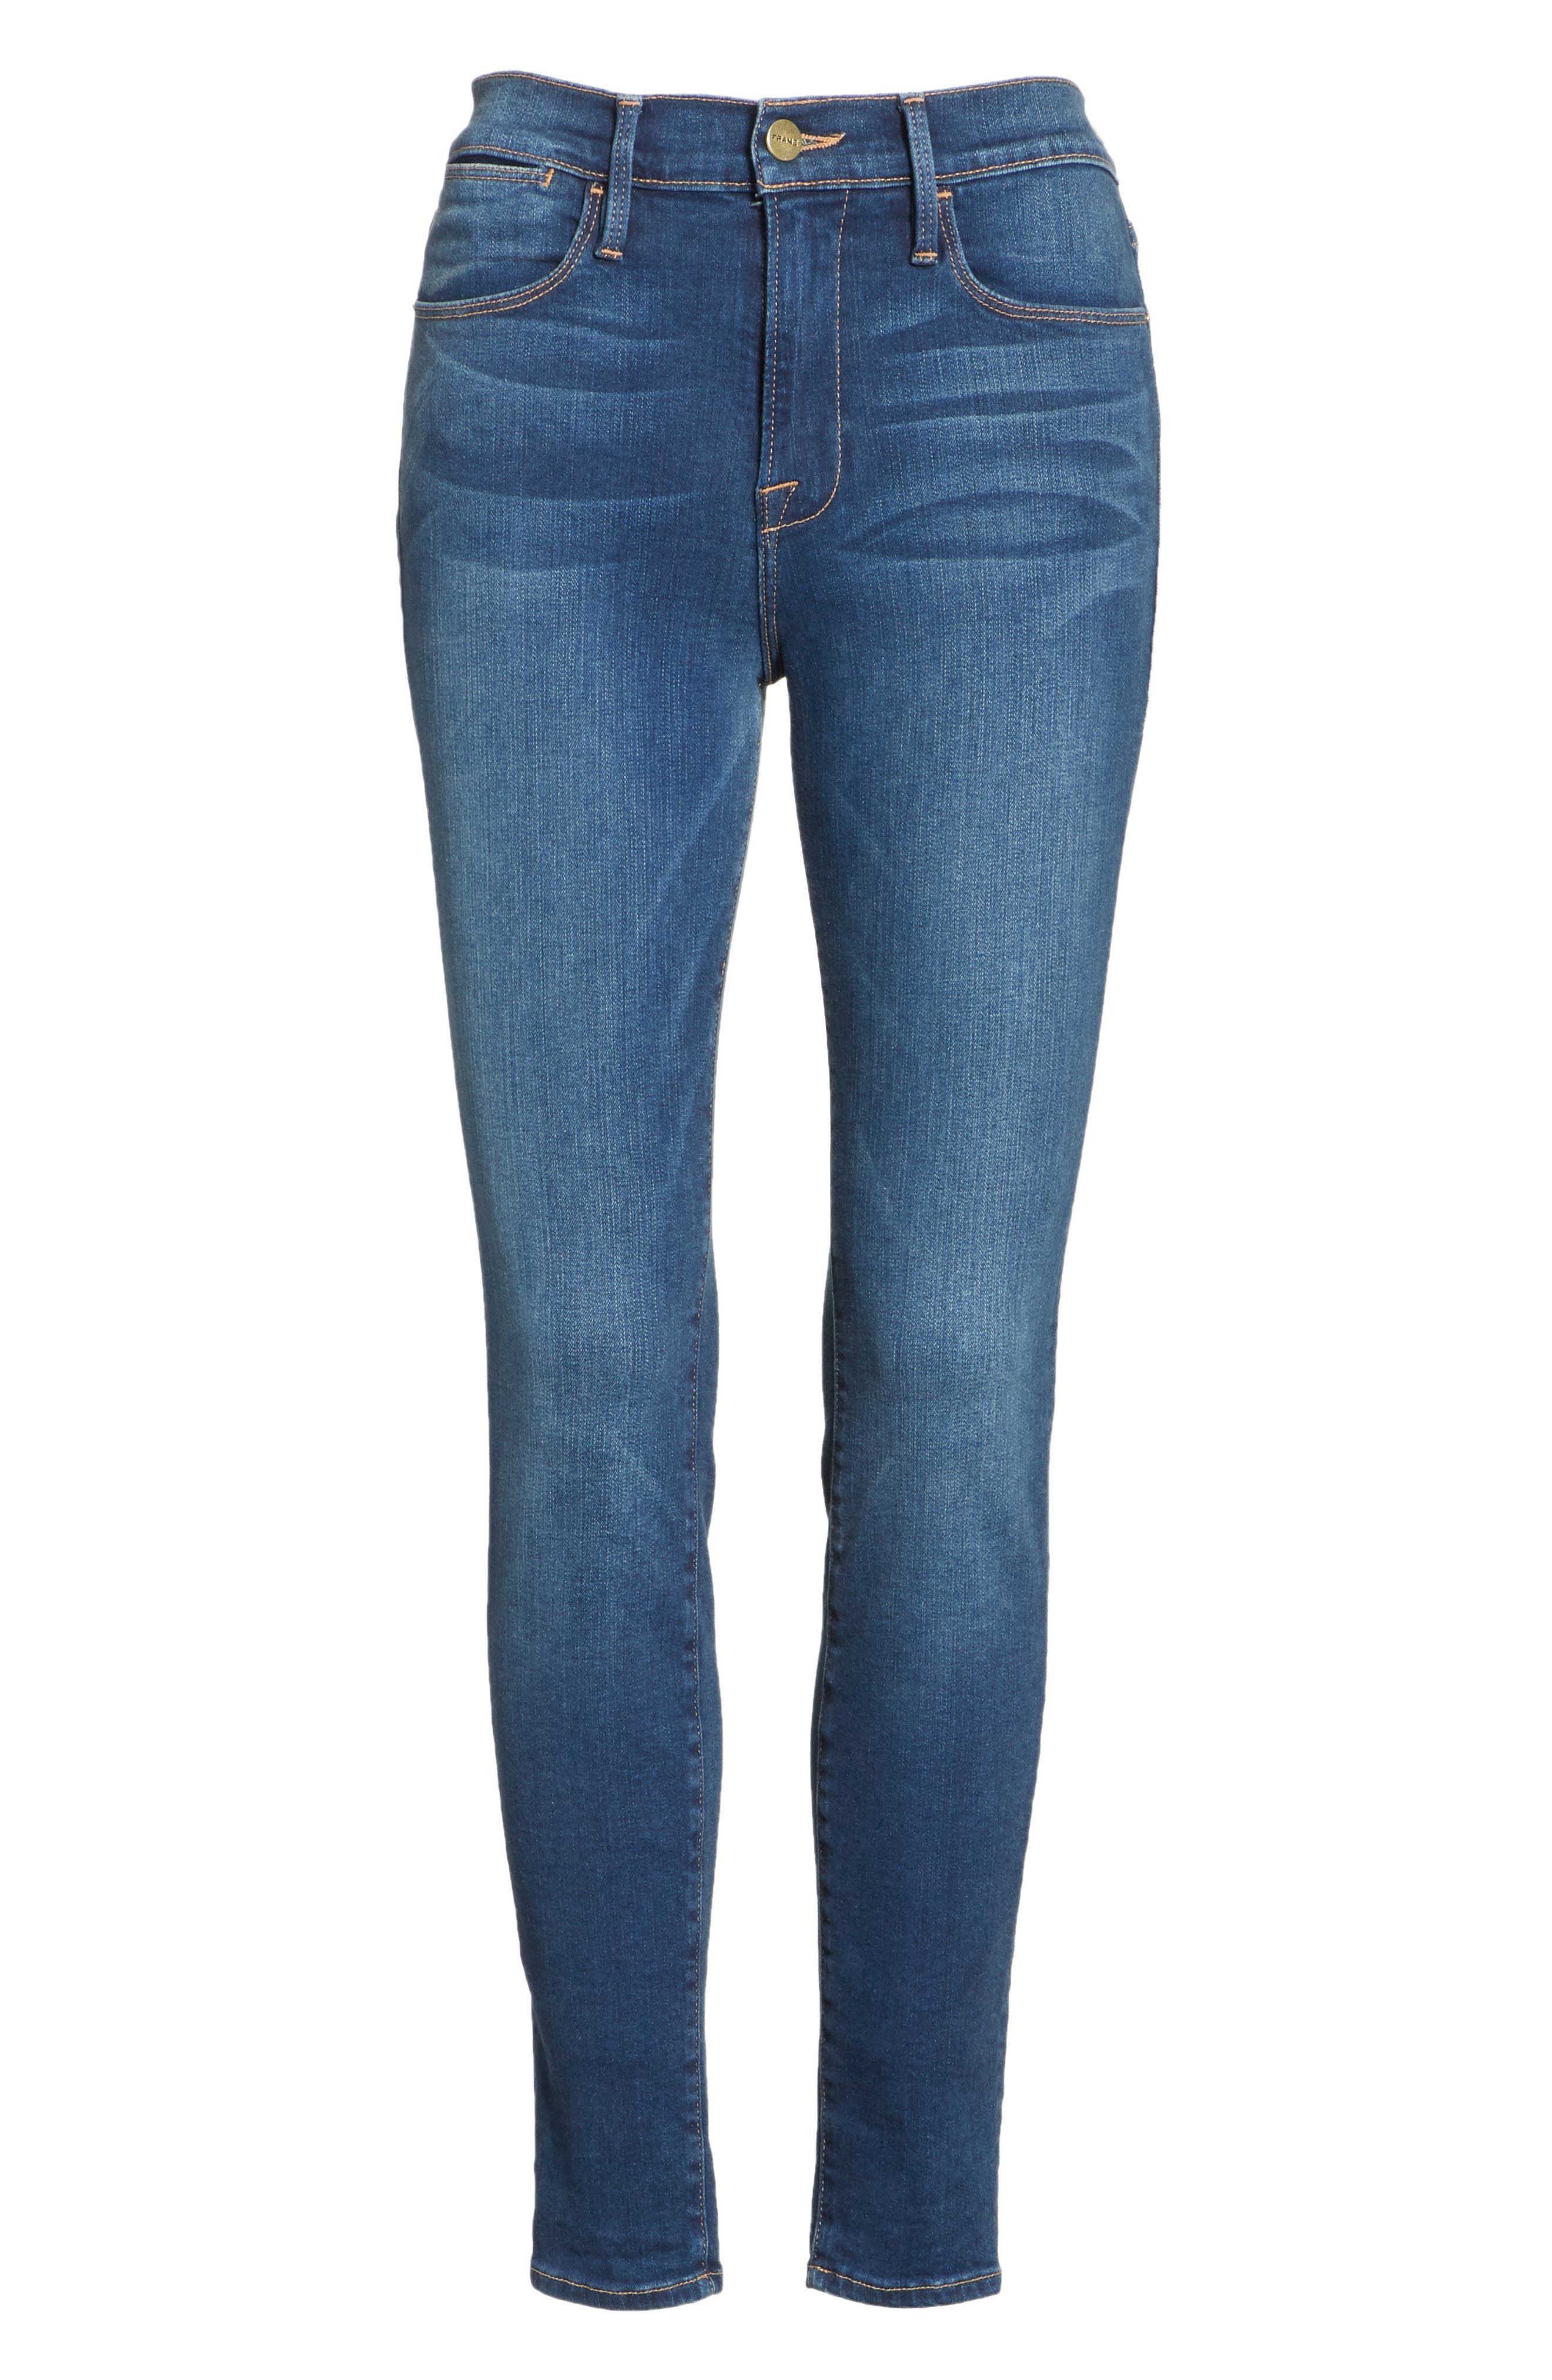 Le High Ankle Skinny Jeans,                             Alternate thumbnail 7, color,                             402